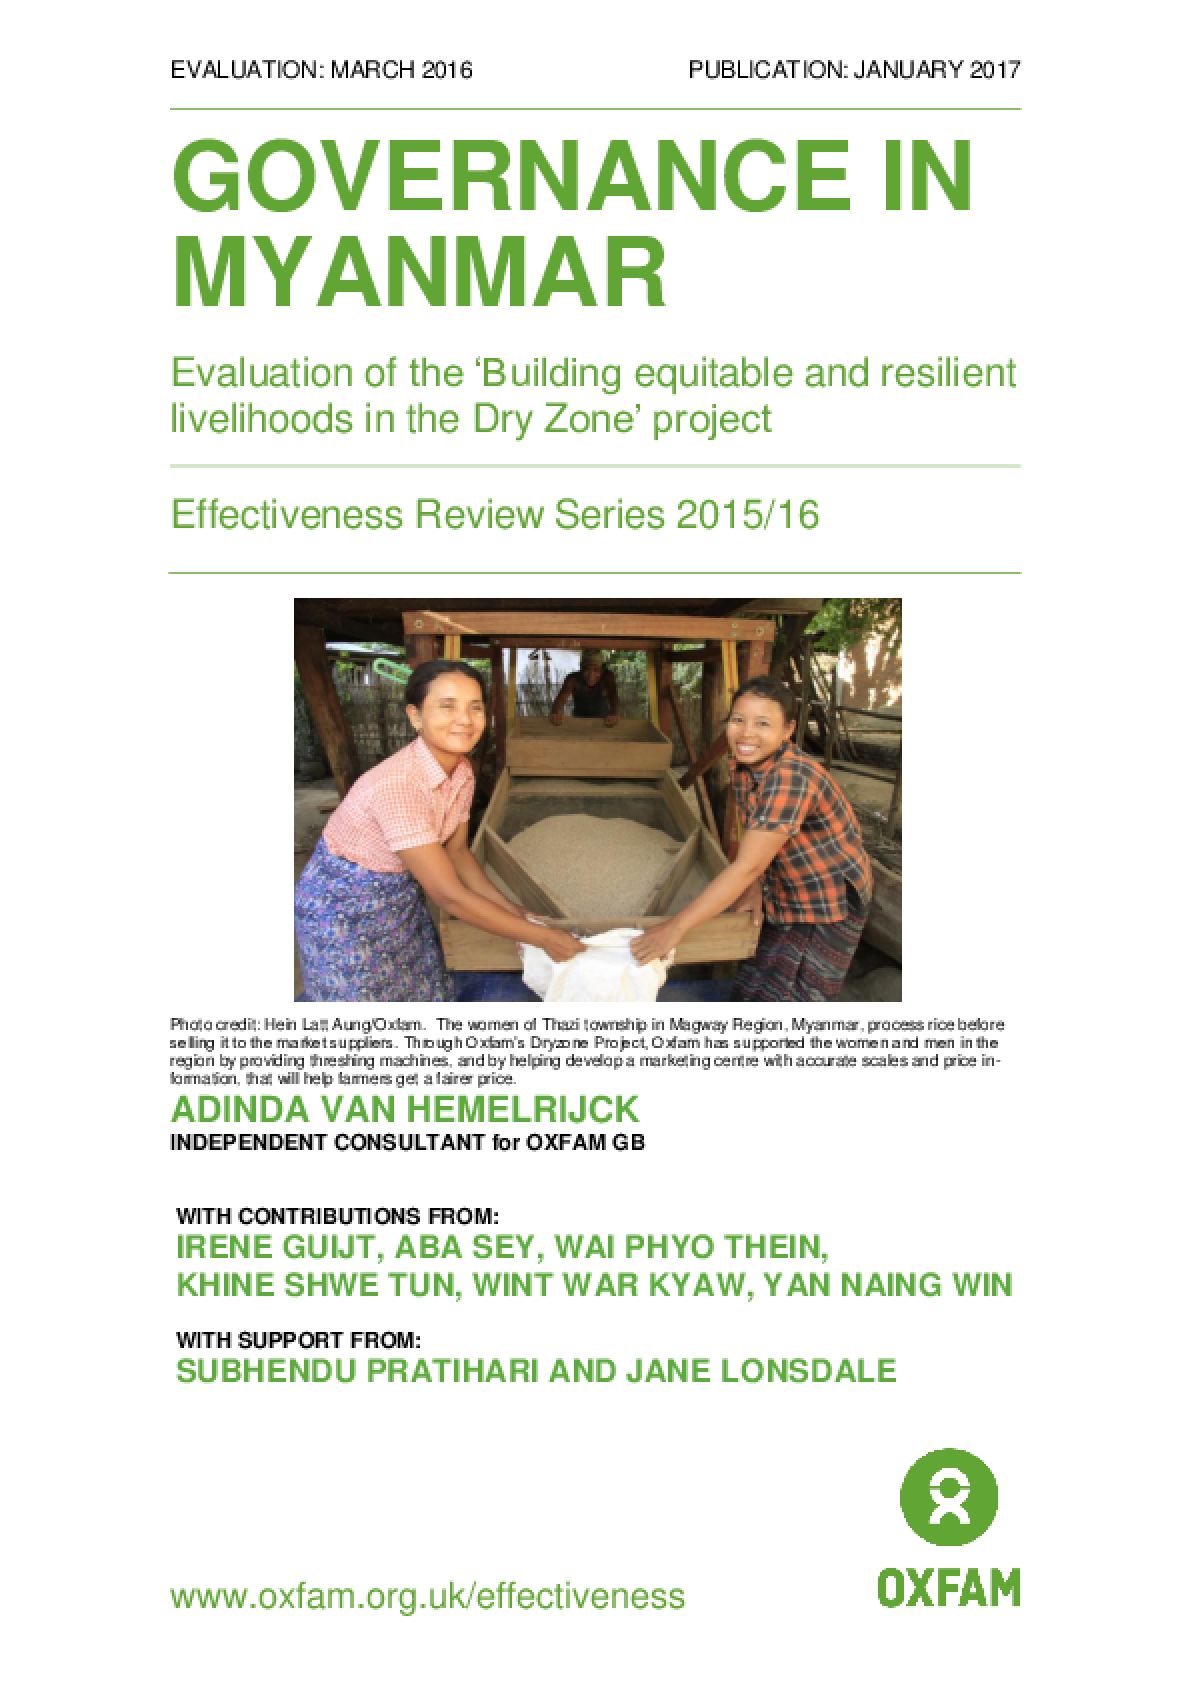 Governance in Myanmar: Evaluation of the 'Building equitable and resilient livelihoods in the Dry Zone' project